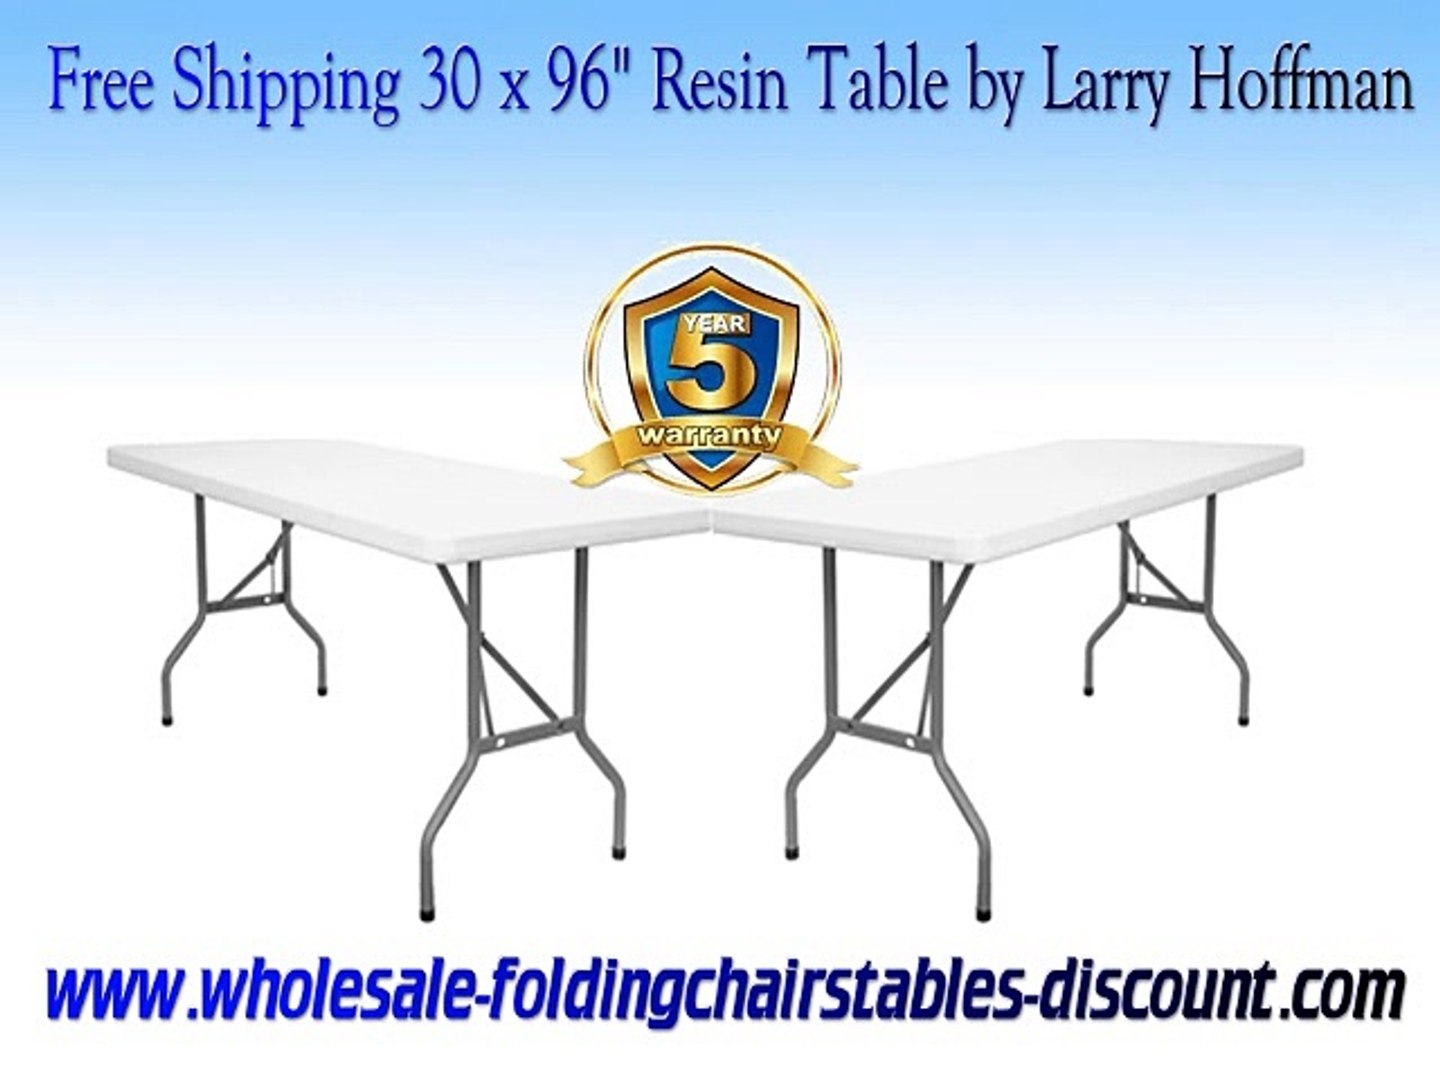 Stupendous Free Shipping 30 X 96 Inches Resin Table By Larry Hoffman Camellatalisay Diy Chair Ideas Camellatalisaycom